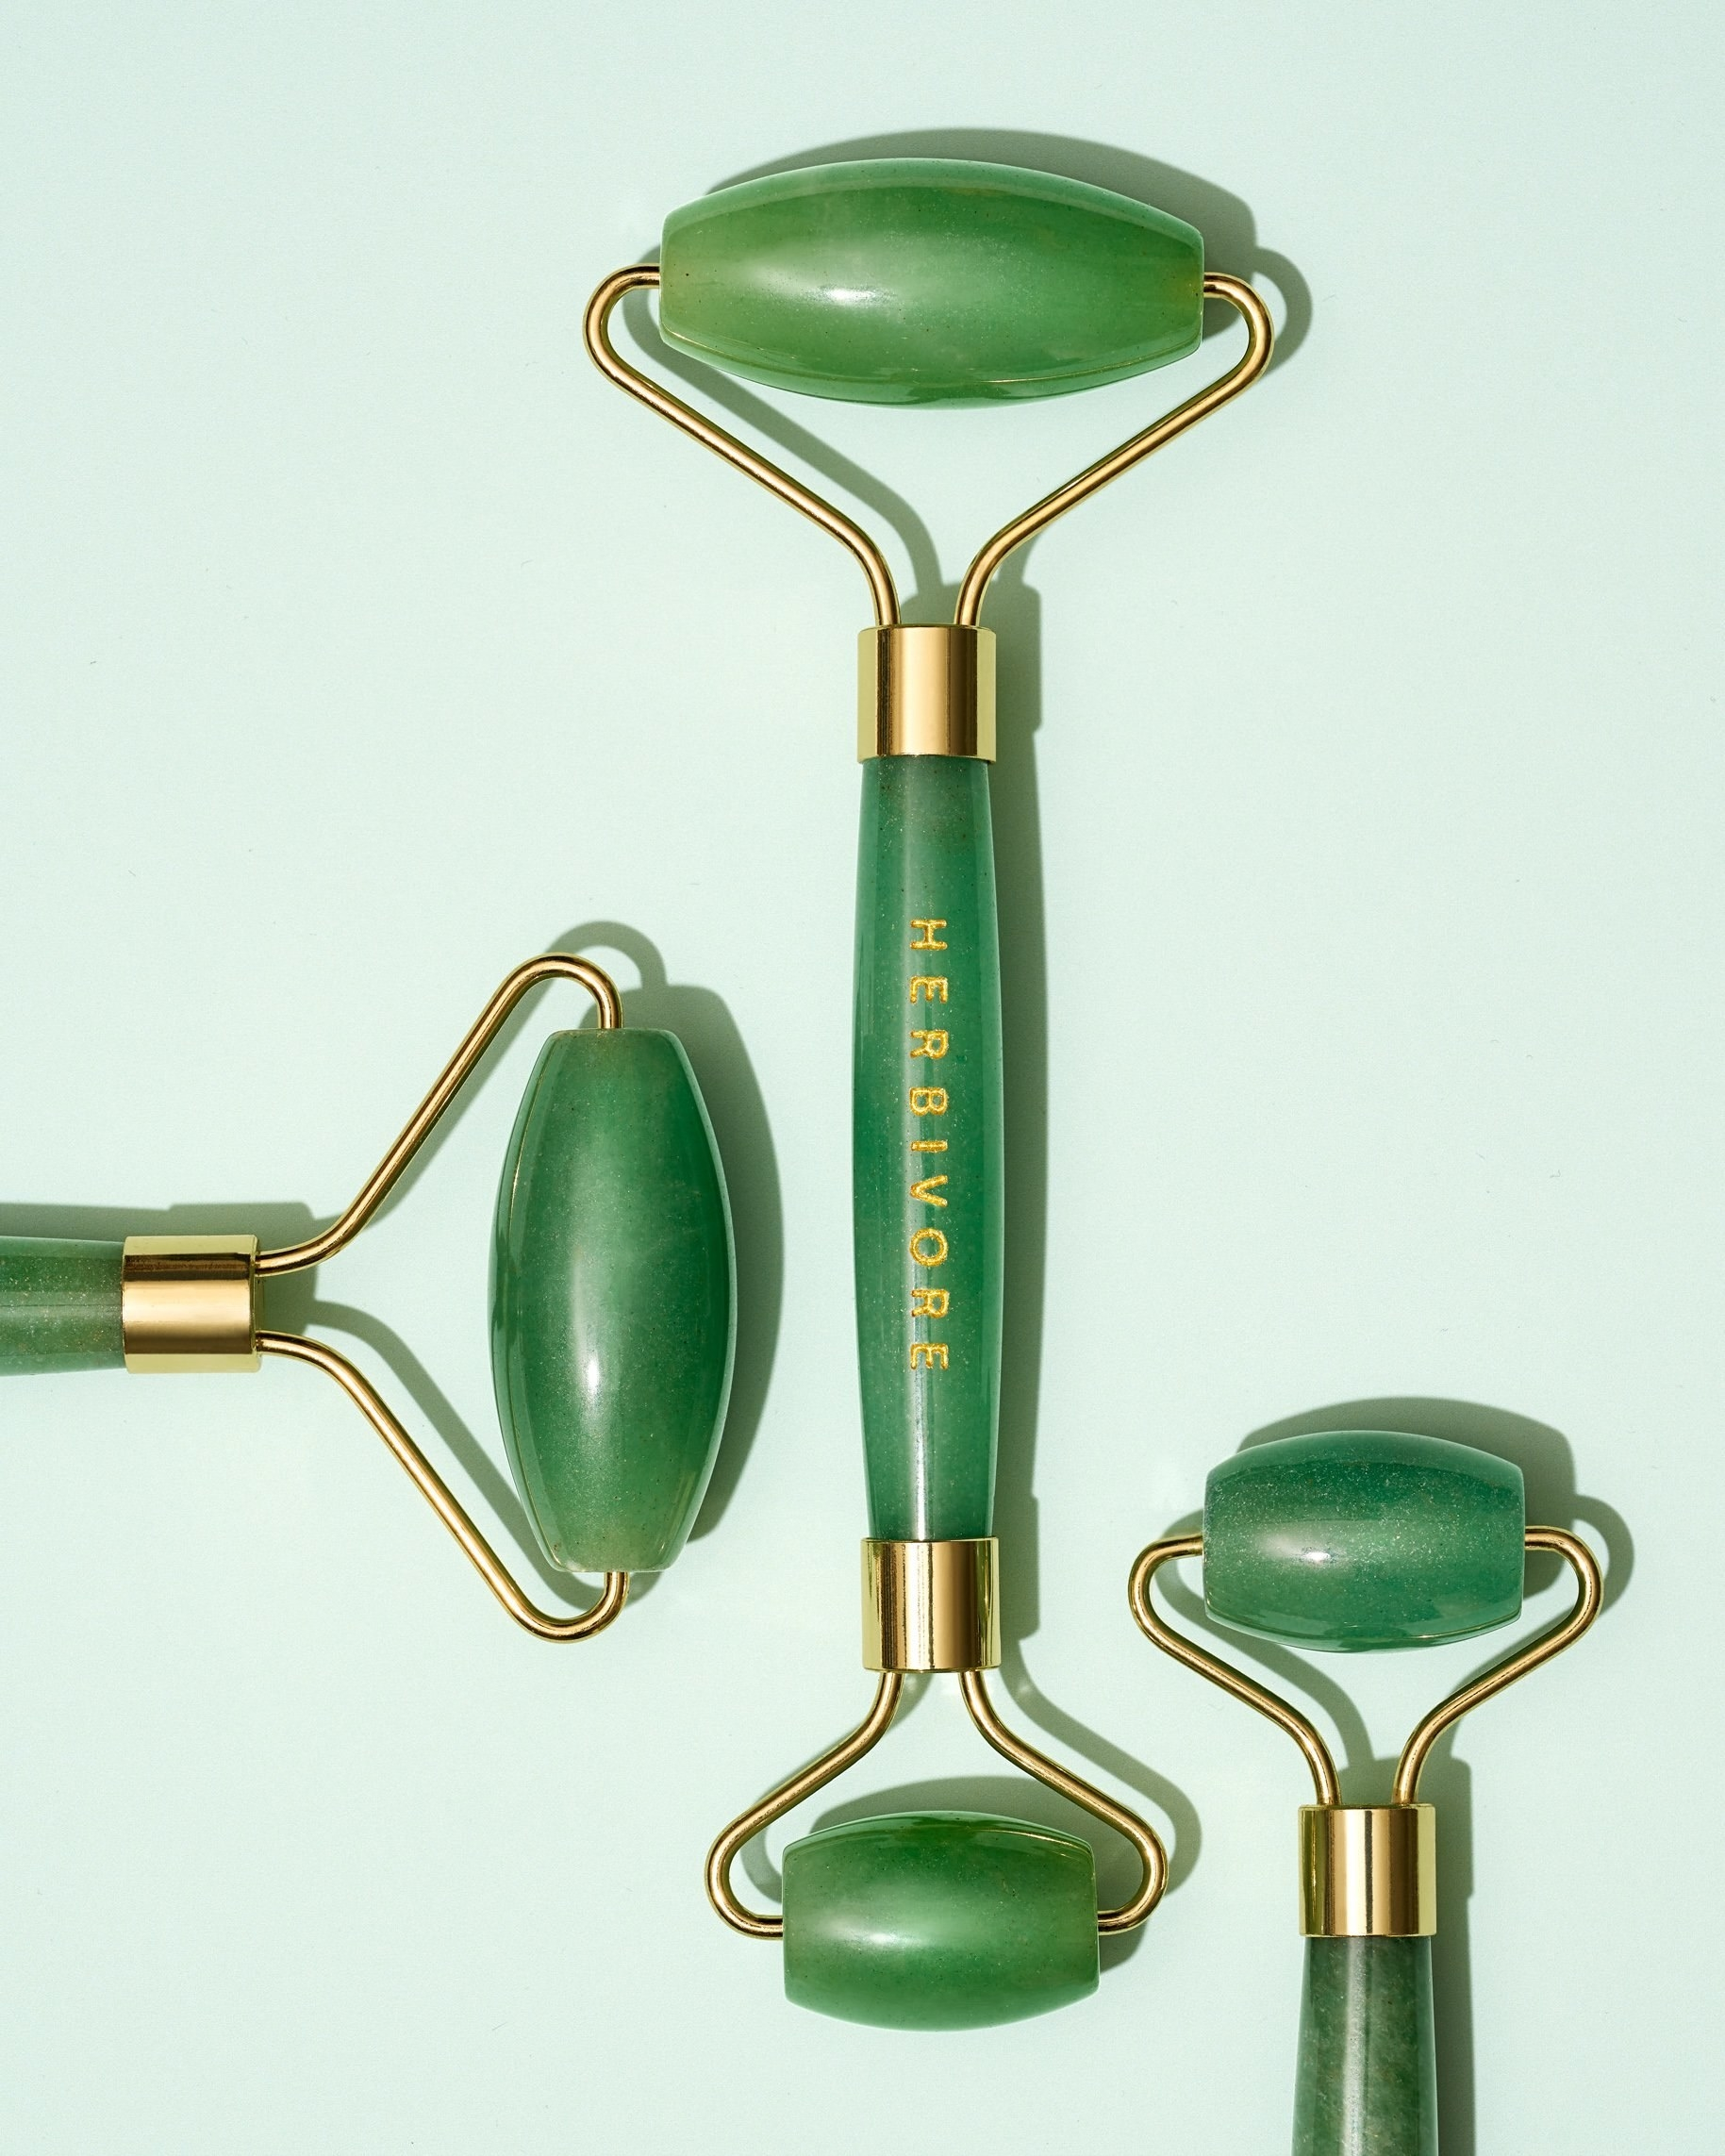 Three jade rollers in a group